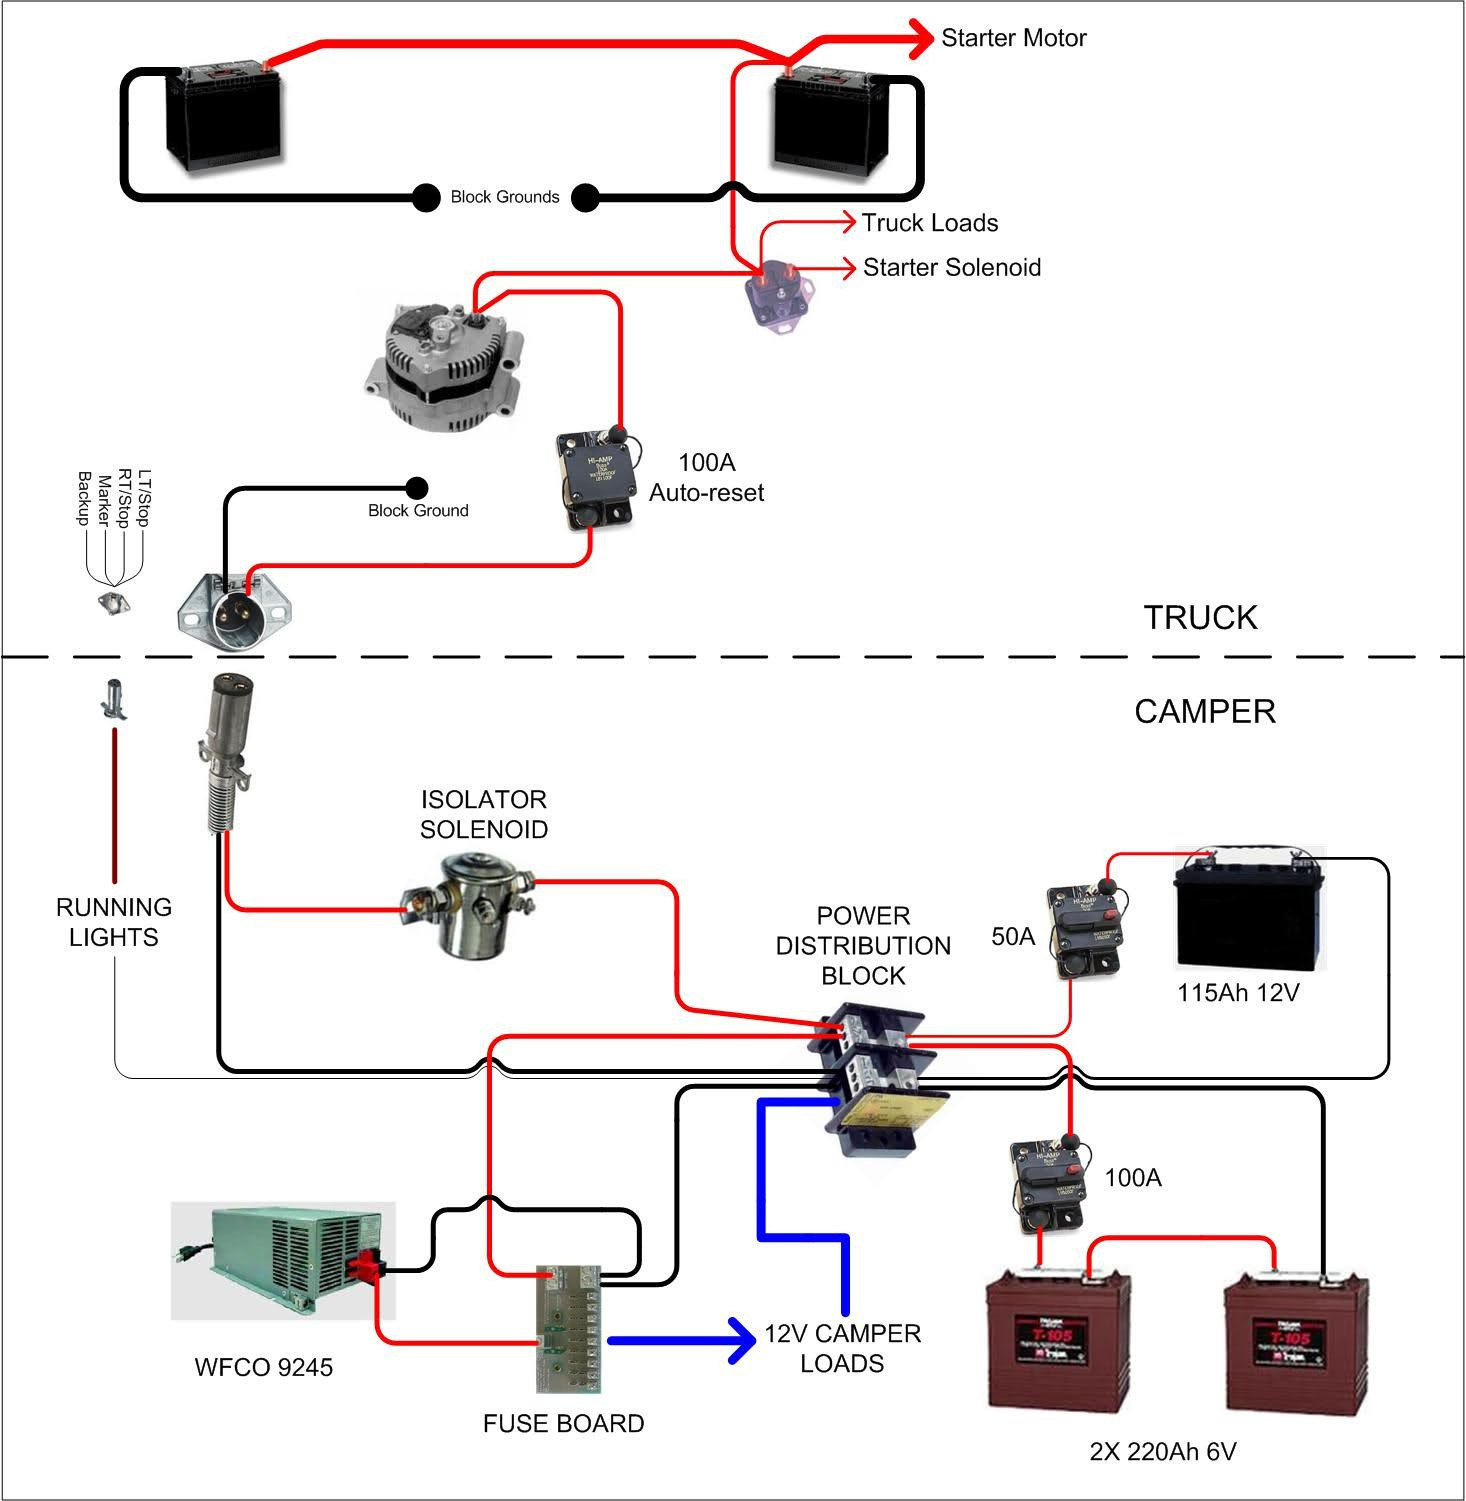 Wells Cargo Trailer Wiring Diagram Rate Wells Cargo Trailer Wiring - Wells Cargo Trailer Wiring Diagram